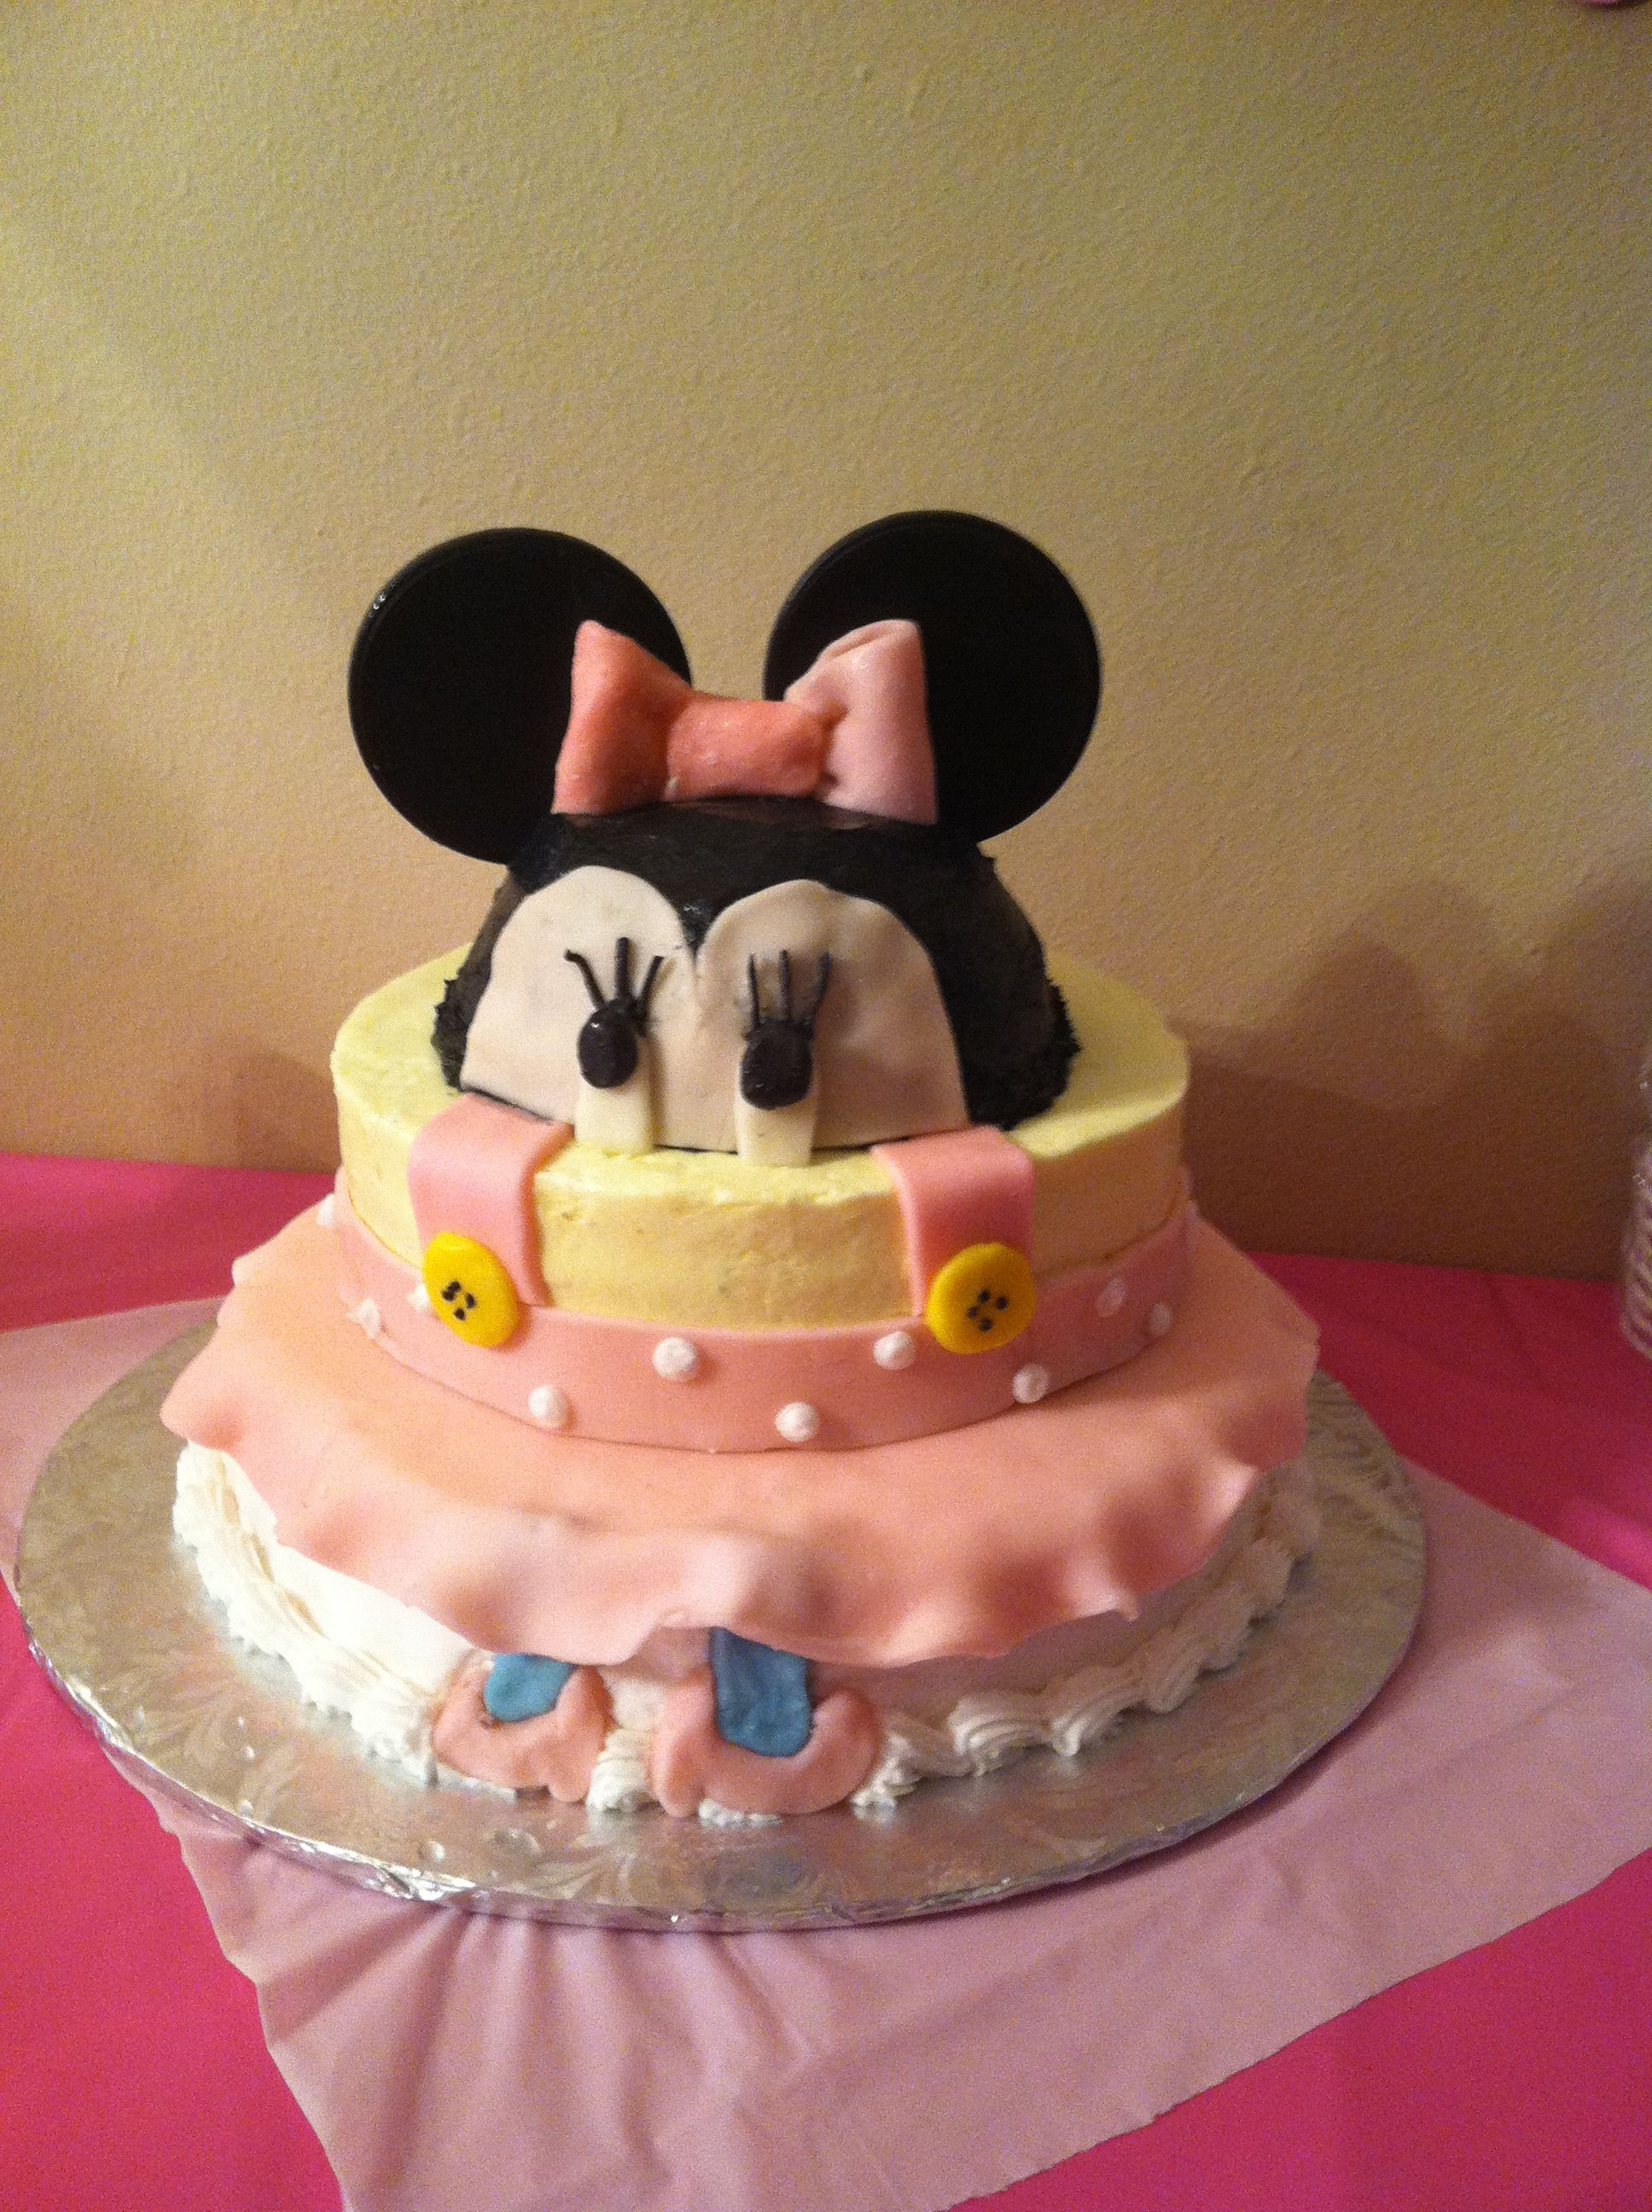 My niece, Anika's , 1st birthday cake, top layer is French